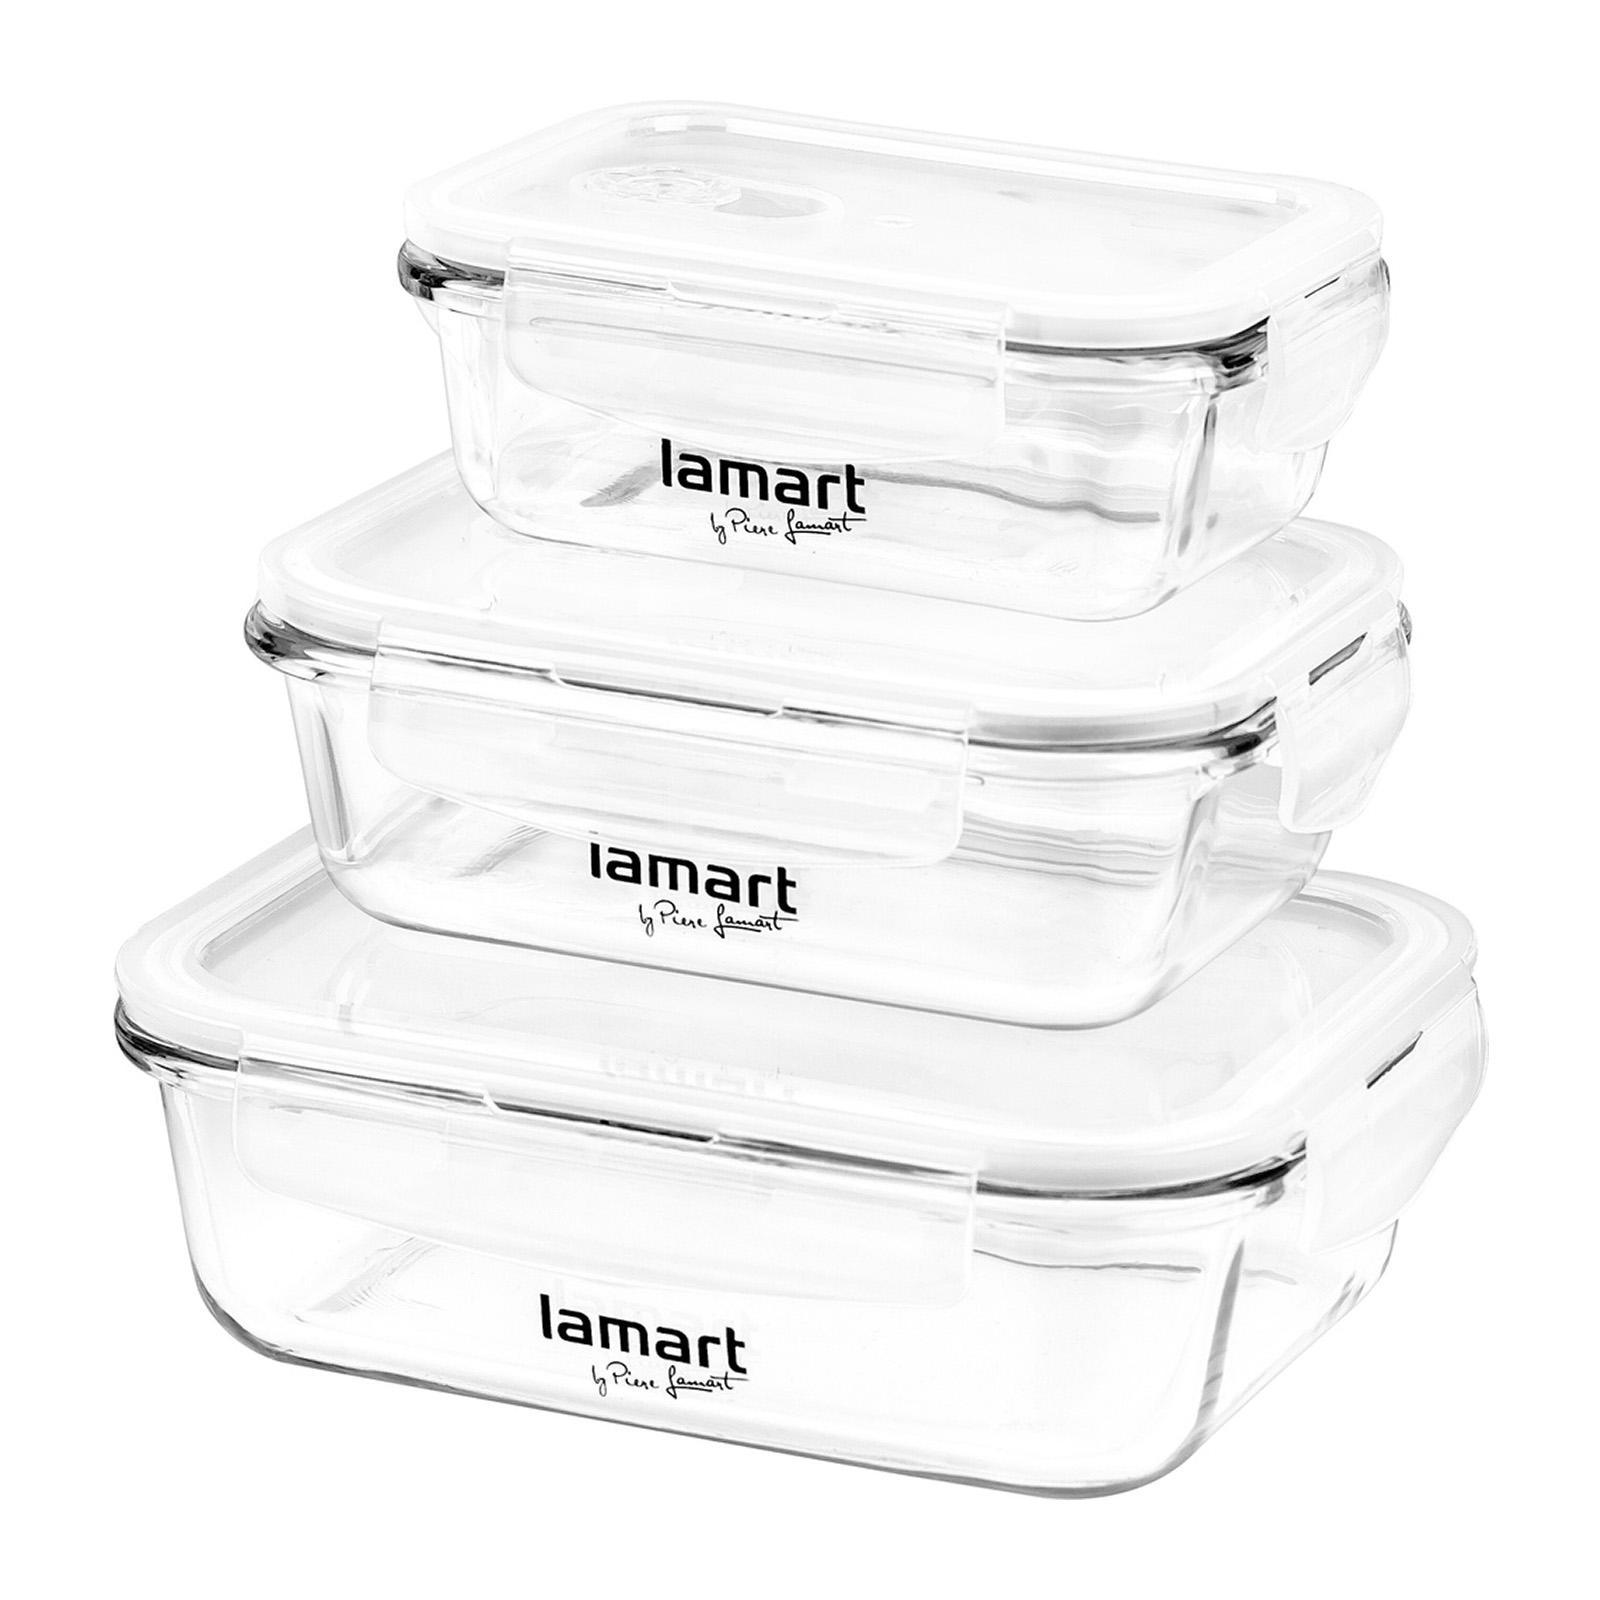 Lamart Air Glass Box Set (Big to Small) - Food Container